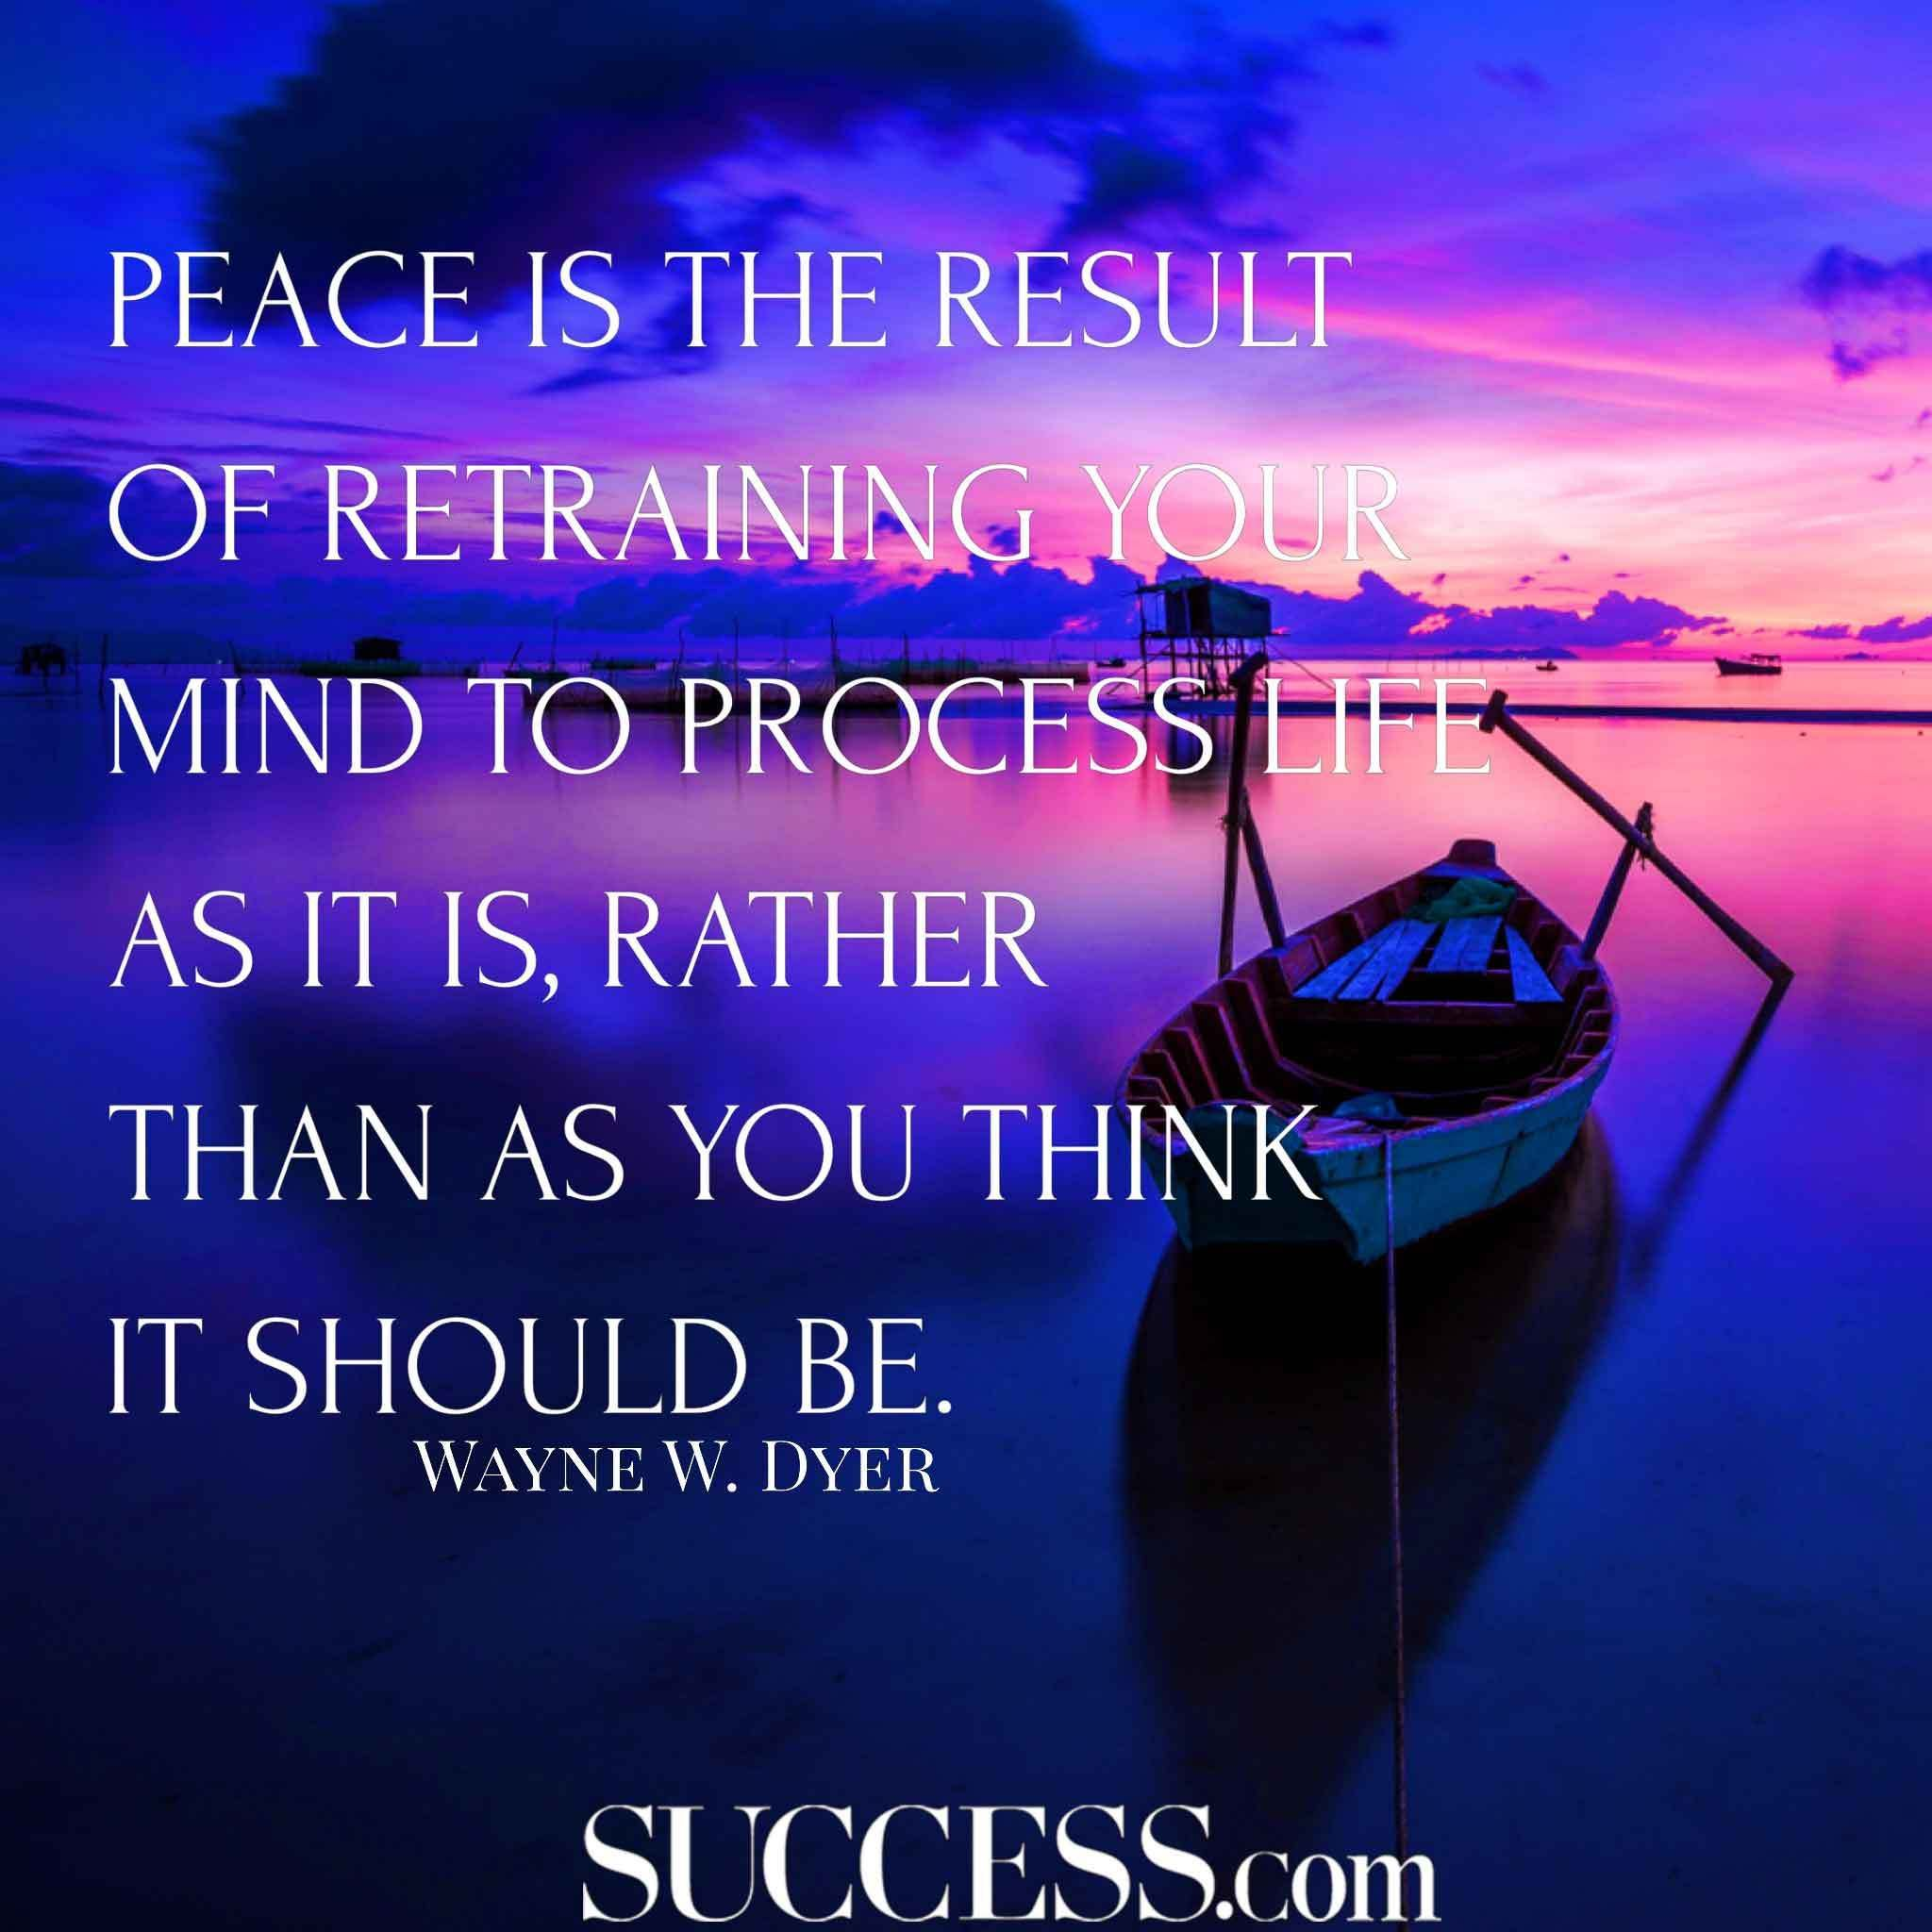 Quotes About Inner Peace Classy 17 Quotes About Finding Inner Peace  Peace  Pinterest  Finding .